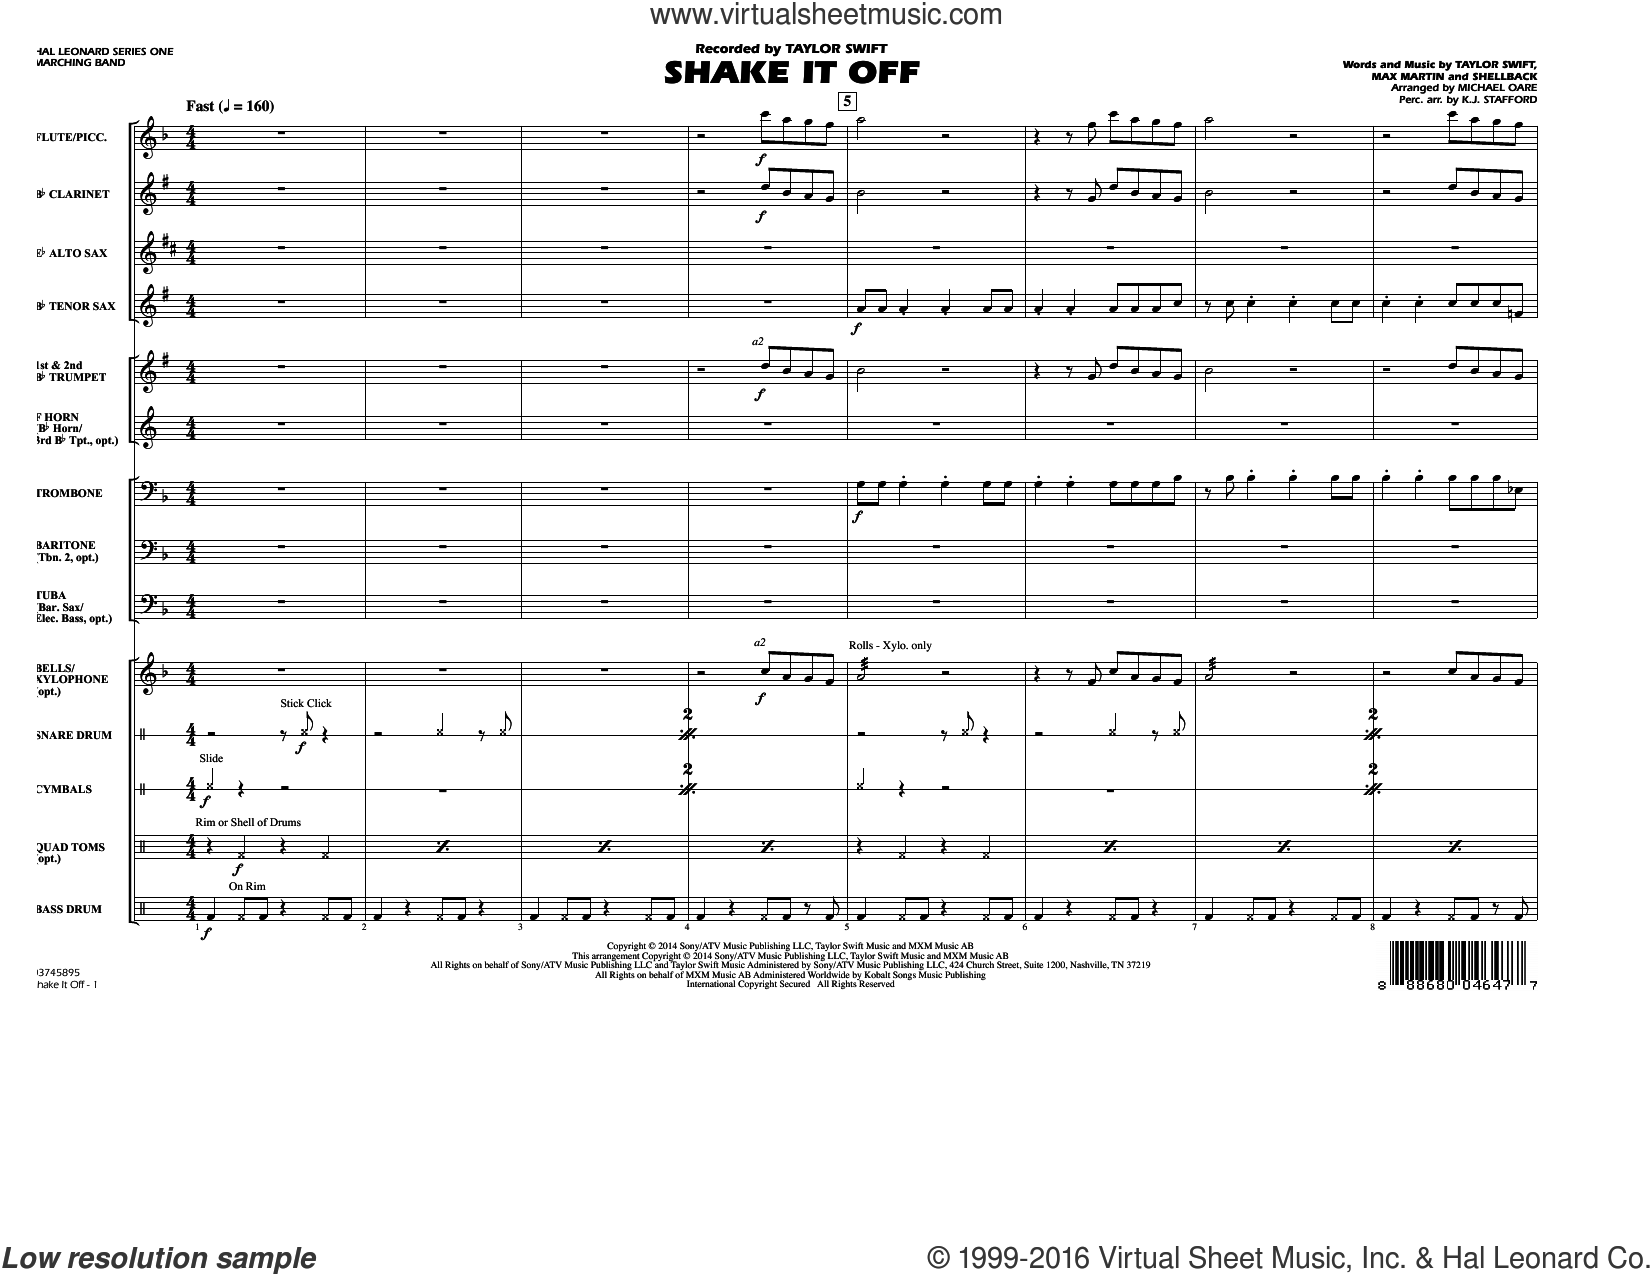 Shake It Off (COMPLETE) sheet music for marching band by Shellback, Johan Schuster, Max Martin, Michael Oare and Taylor Swift. Score Image Preview.